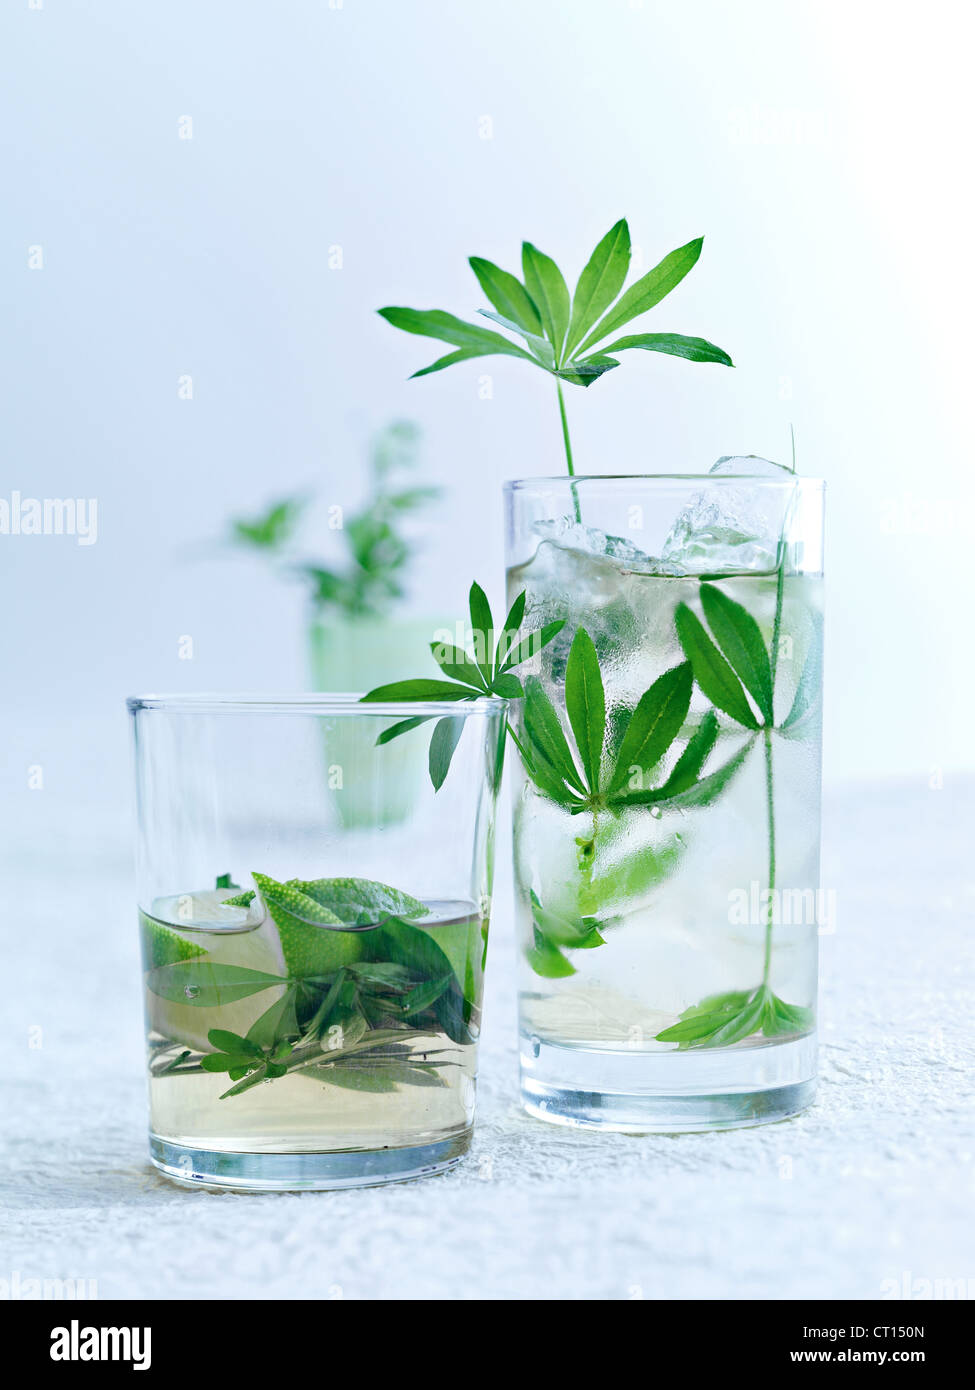 Herbs in glasses of water - Stock Image